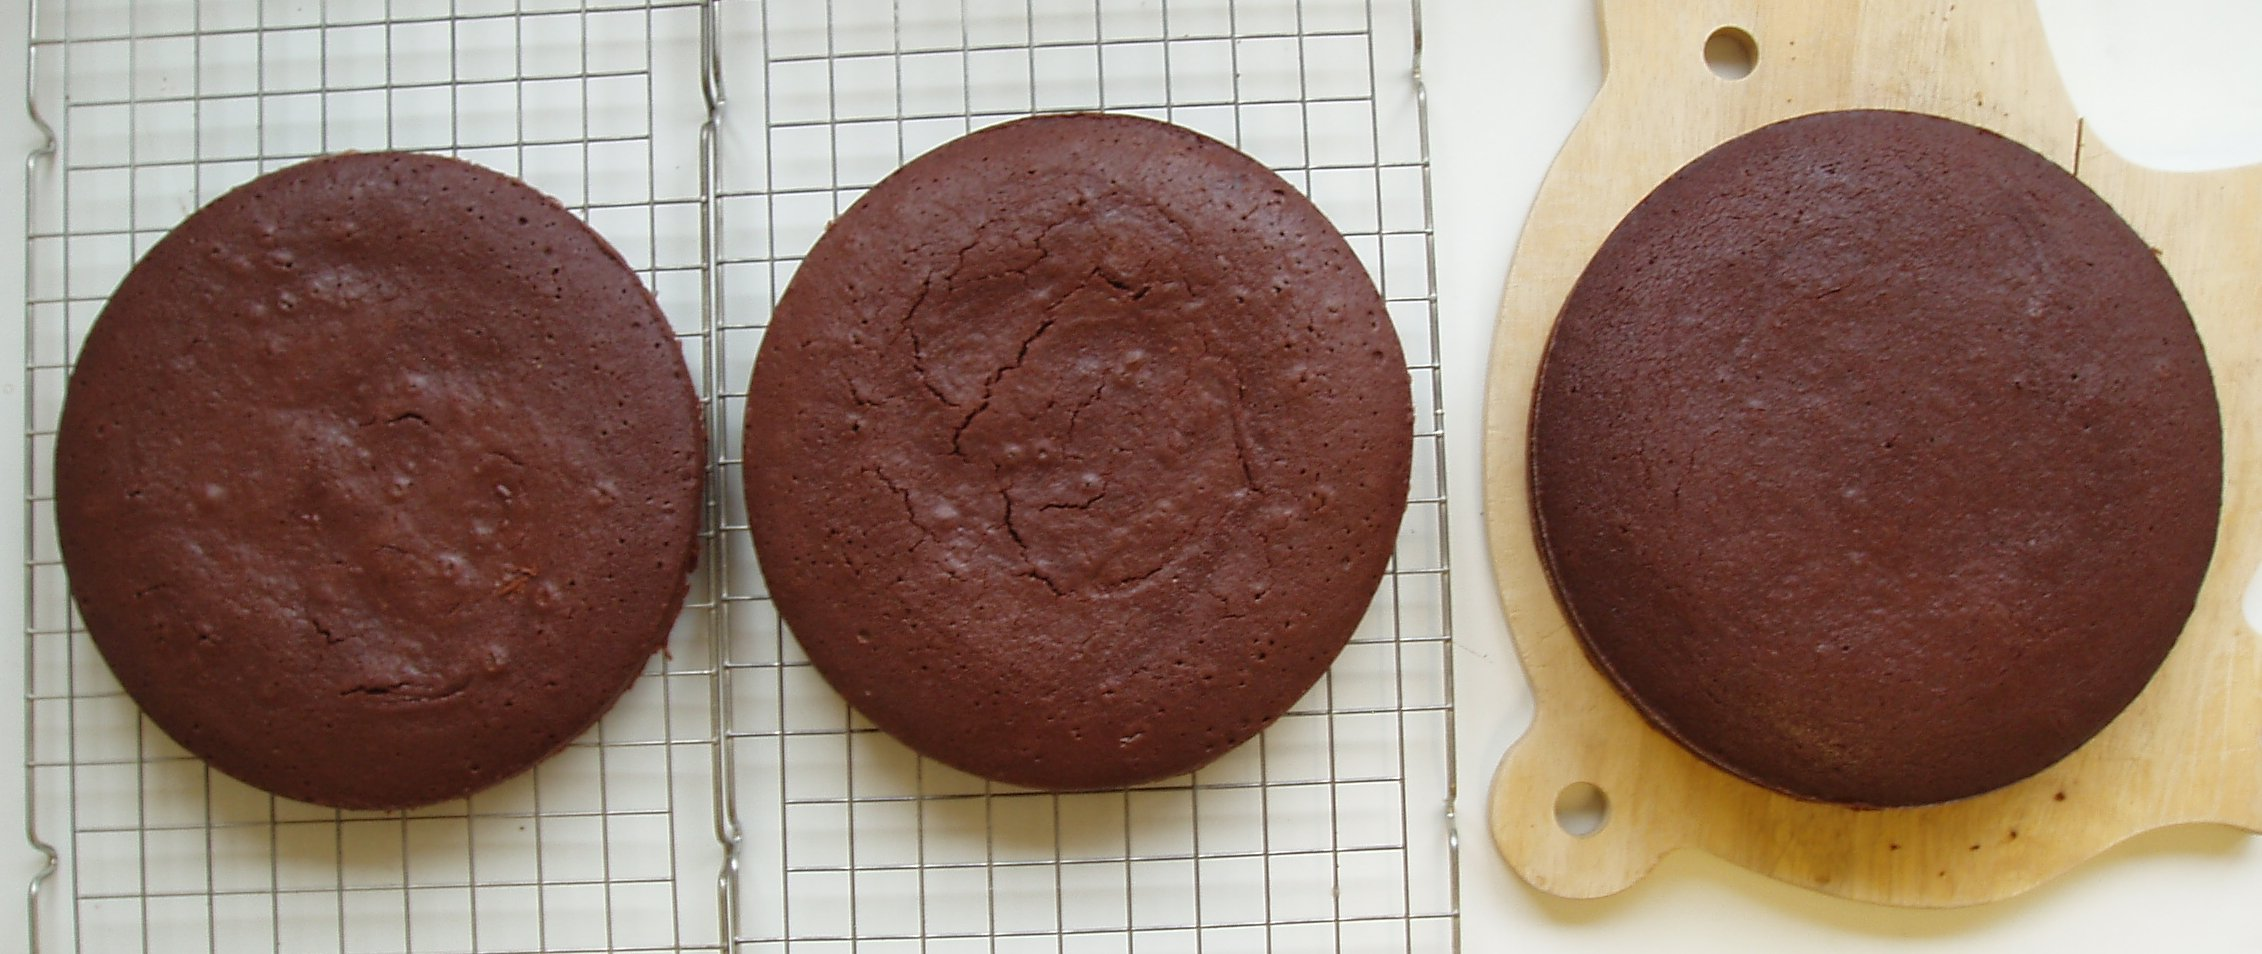 Chocolate Cake Recipe Using Self Rising Flour